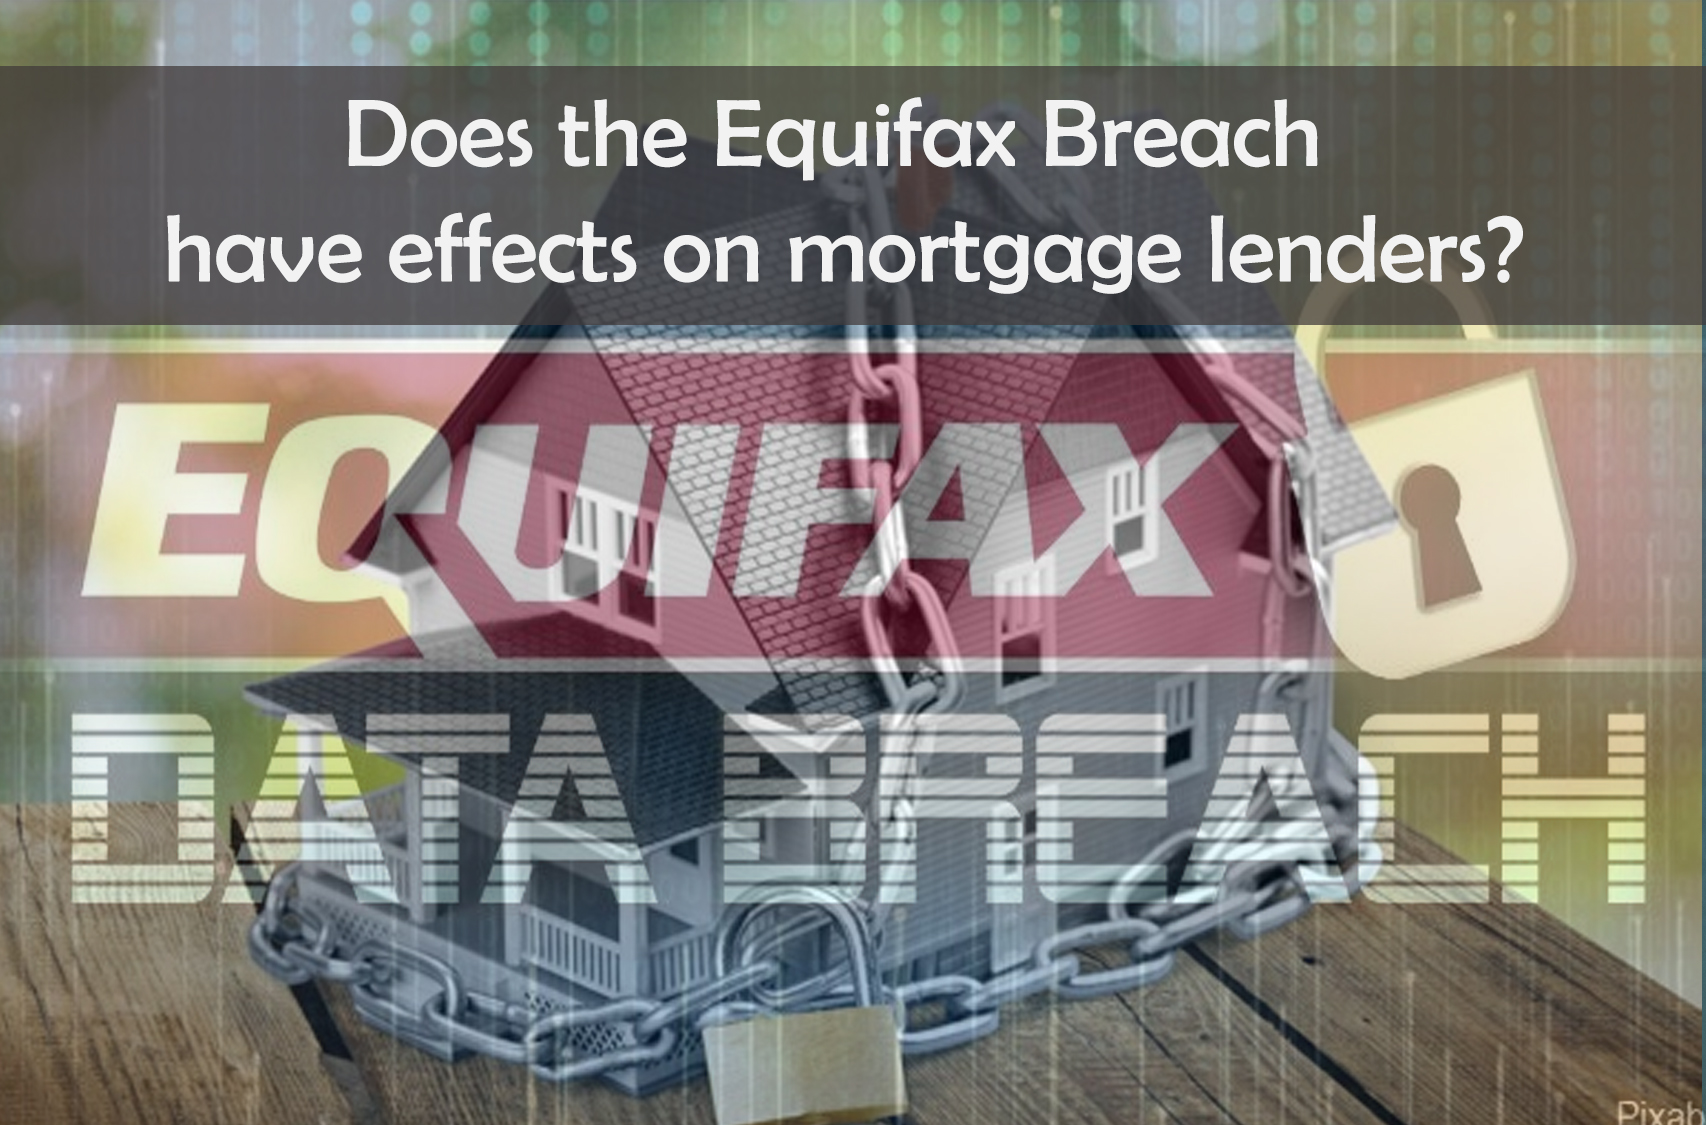 Equifax breach and mortgage effects